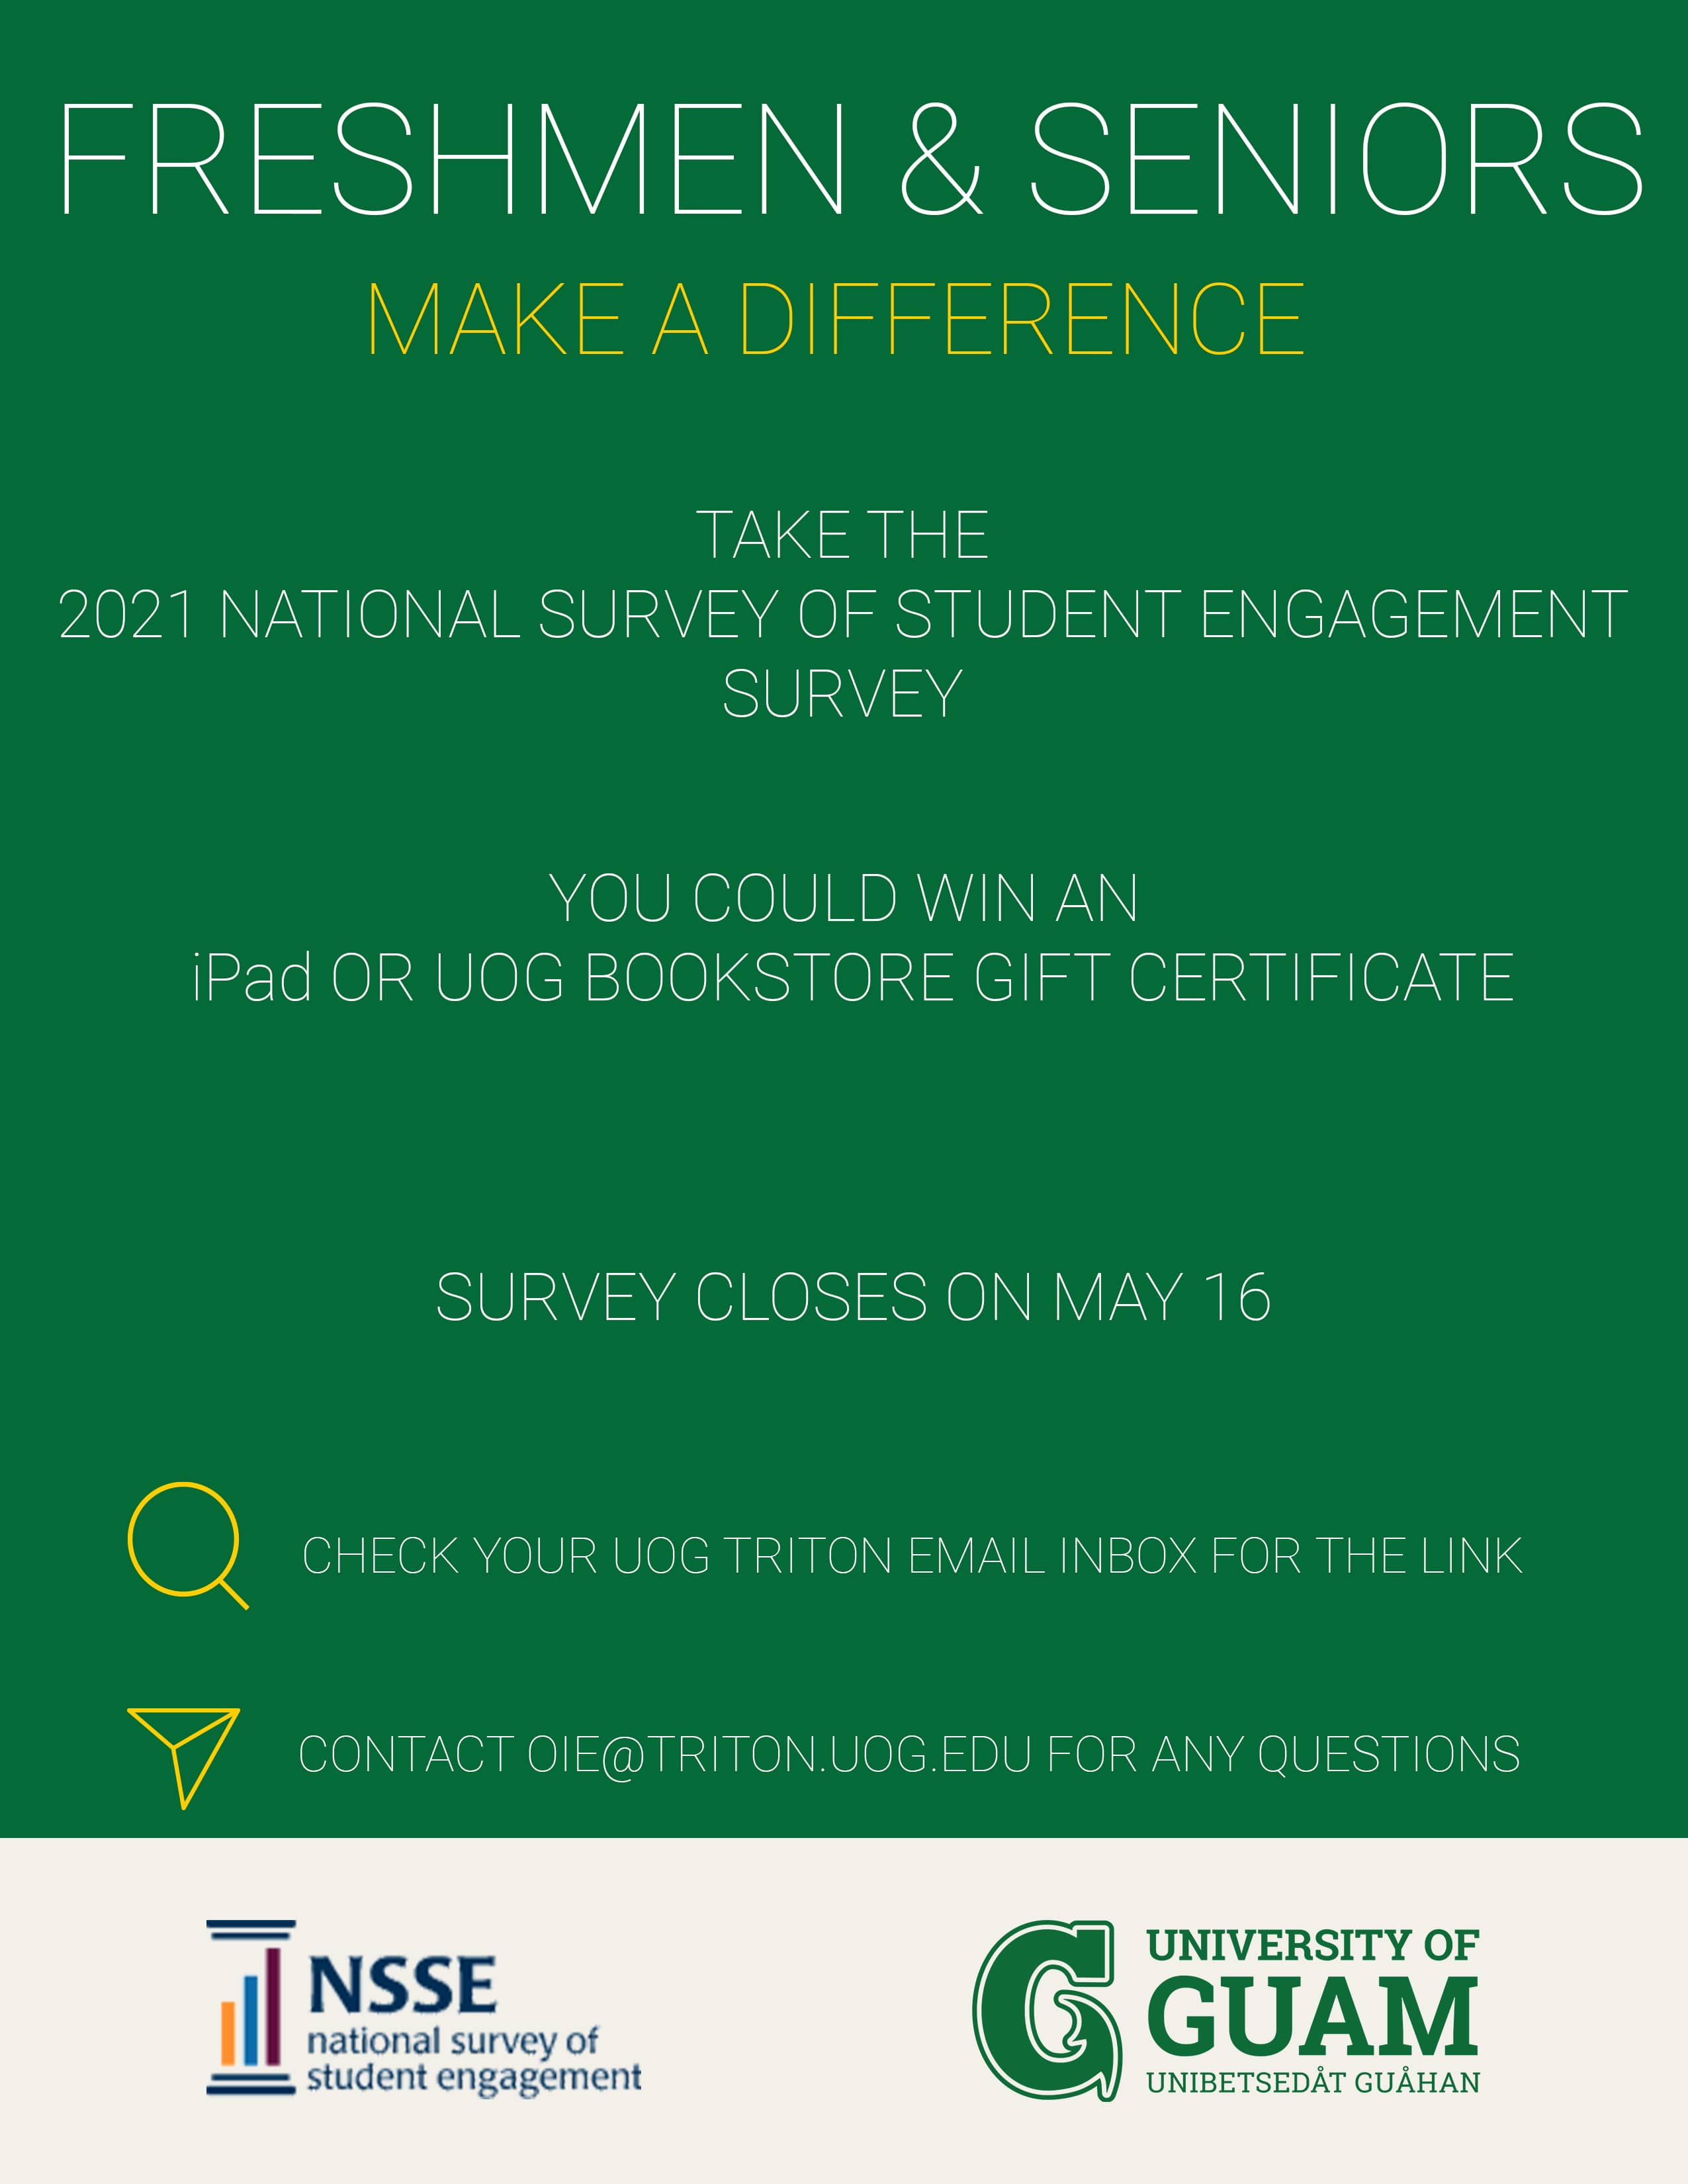 Deadline to participate in the National Survey of Student Engagement